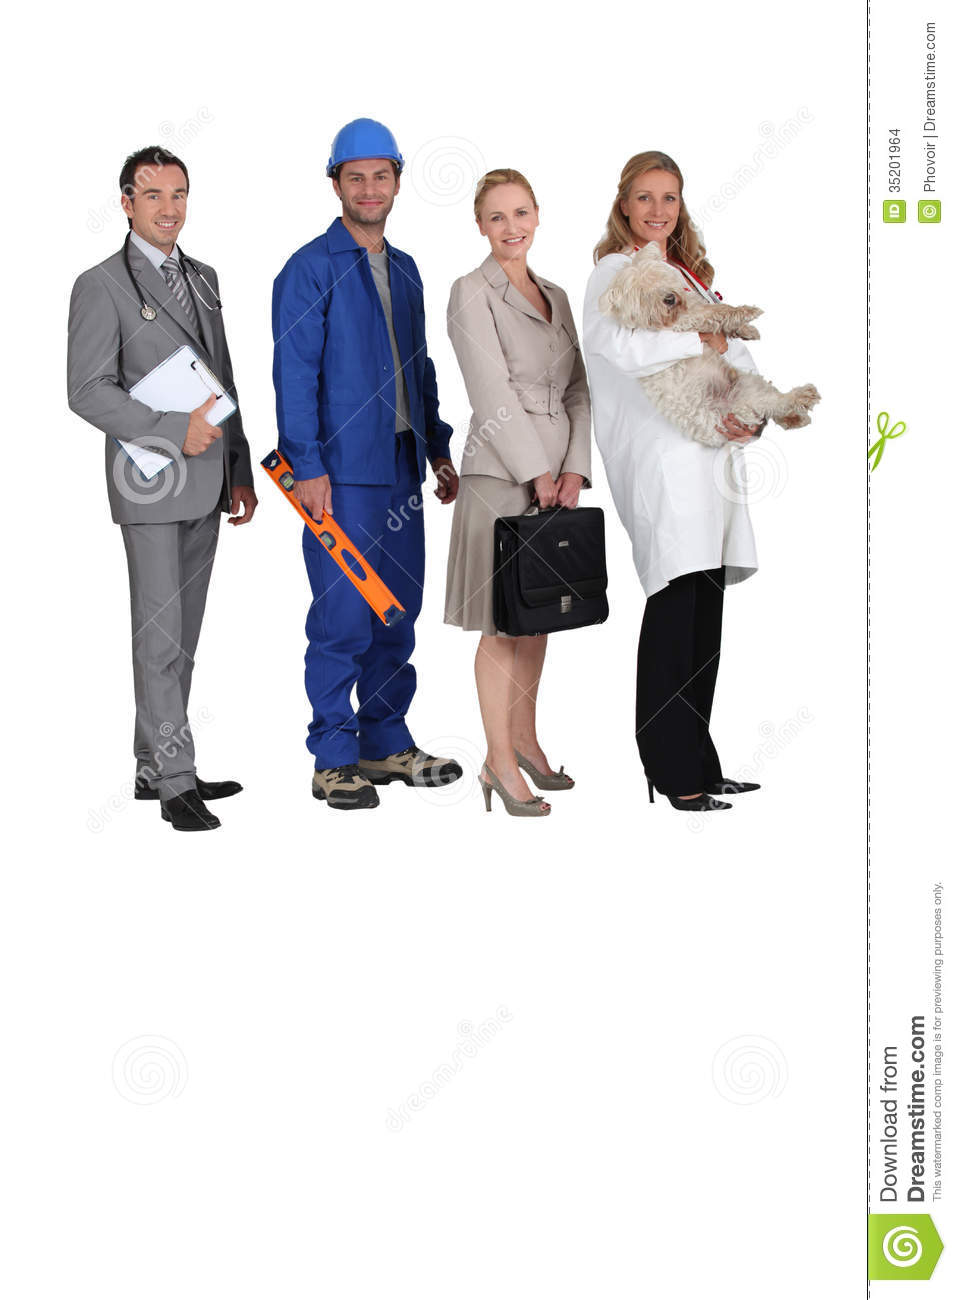 People Occupations Jobs And Community At: Different Jobs Stock Photo. Image Of Smiling, 34, Activity